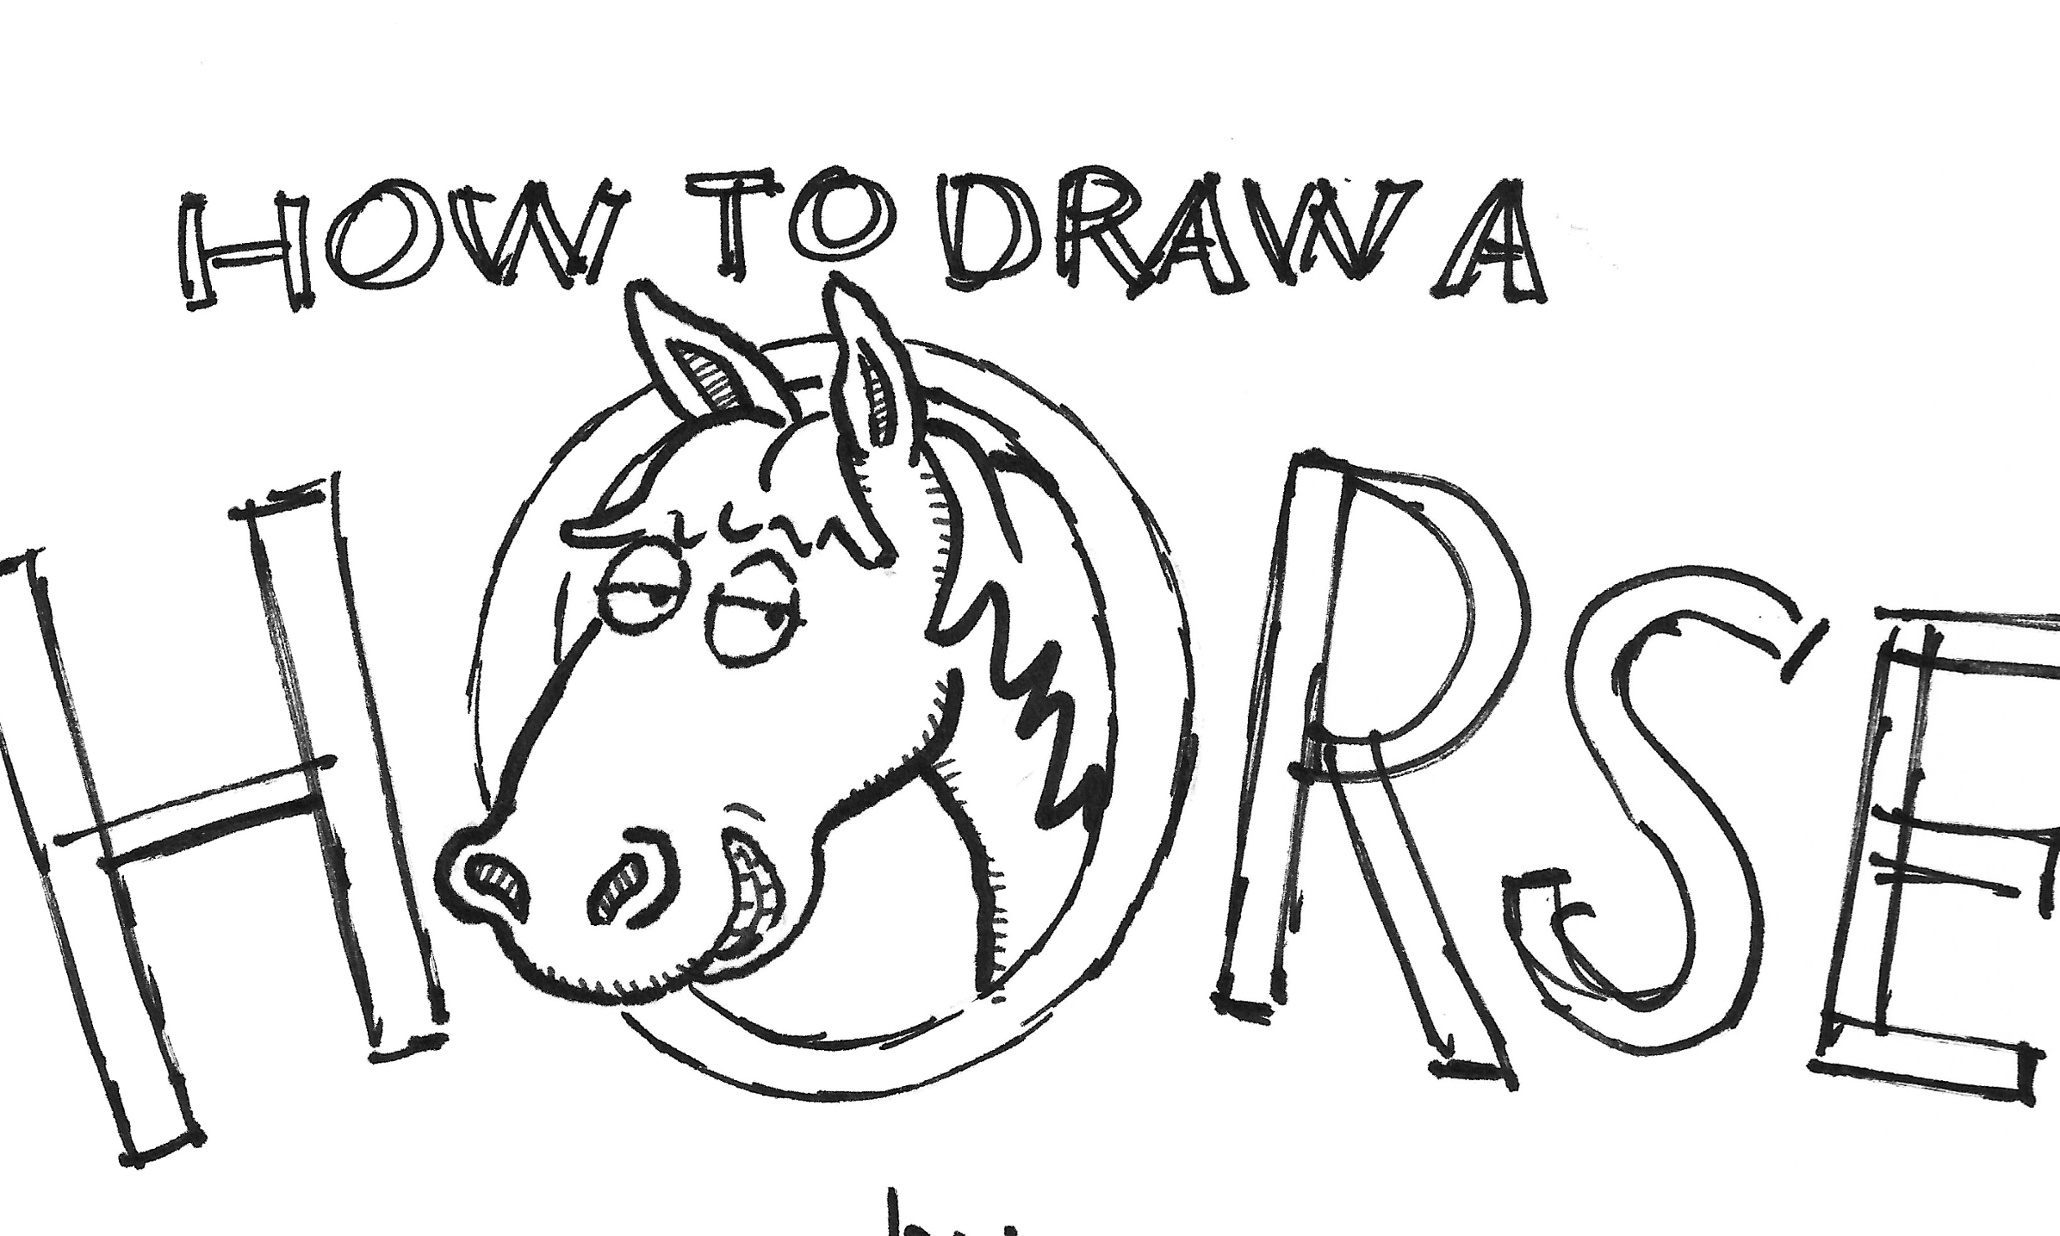 how to draw a horse how to draw a horse schulman art to draw a horse how